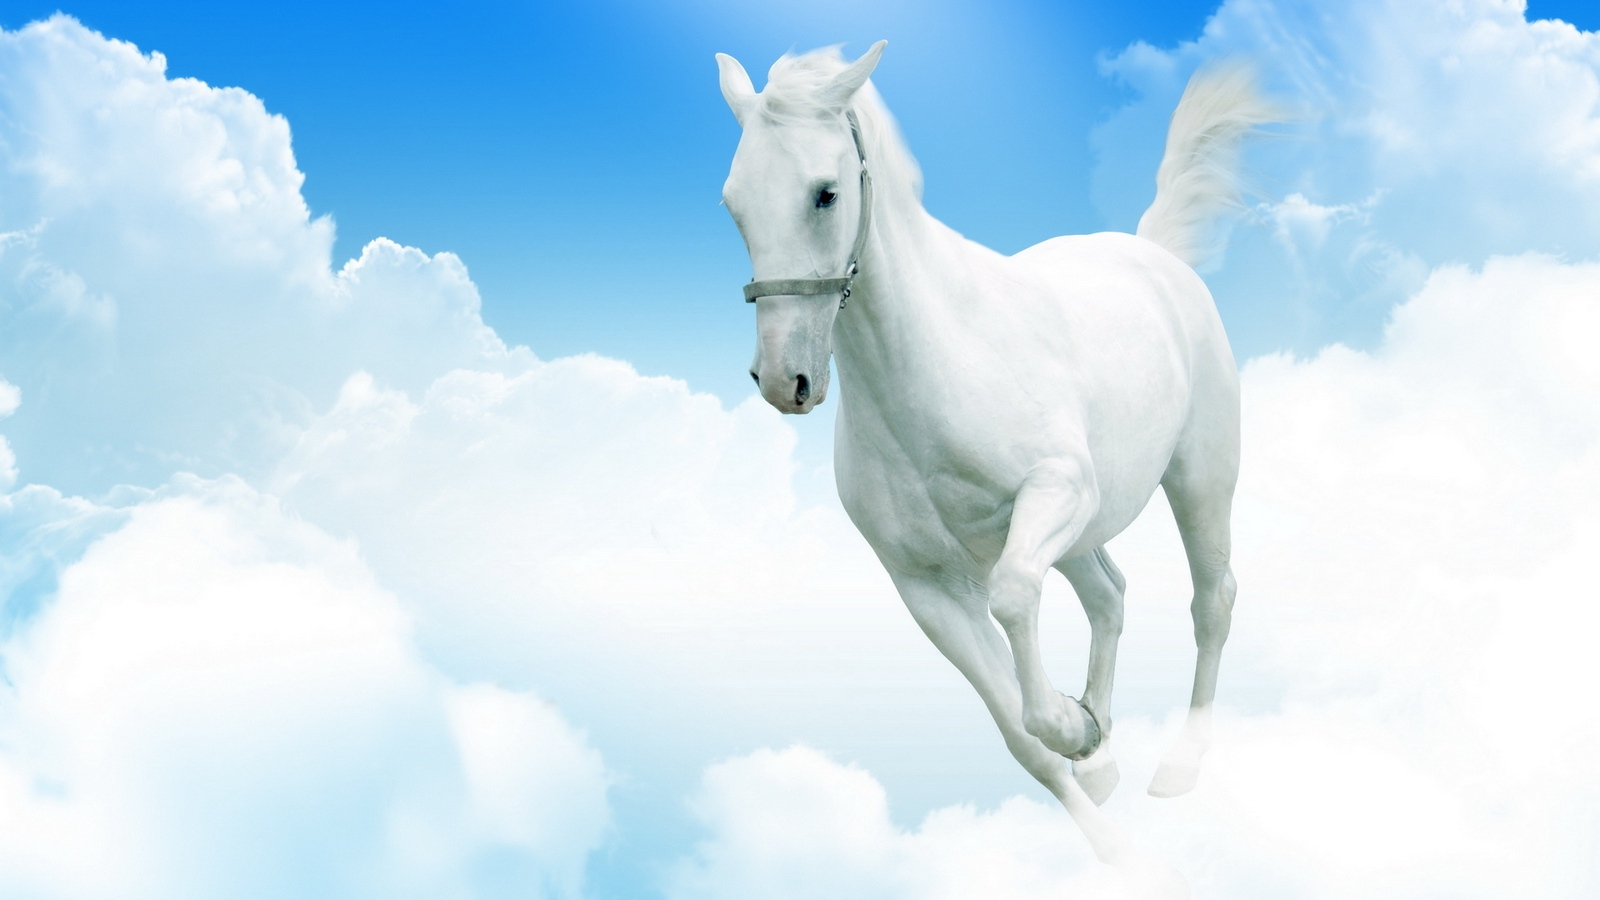 Wallpaper White Horse Clouds Jumping White Horse Wallpaper Hd 282388 Hd Wallpaper Backgrounds Download